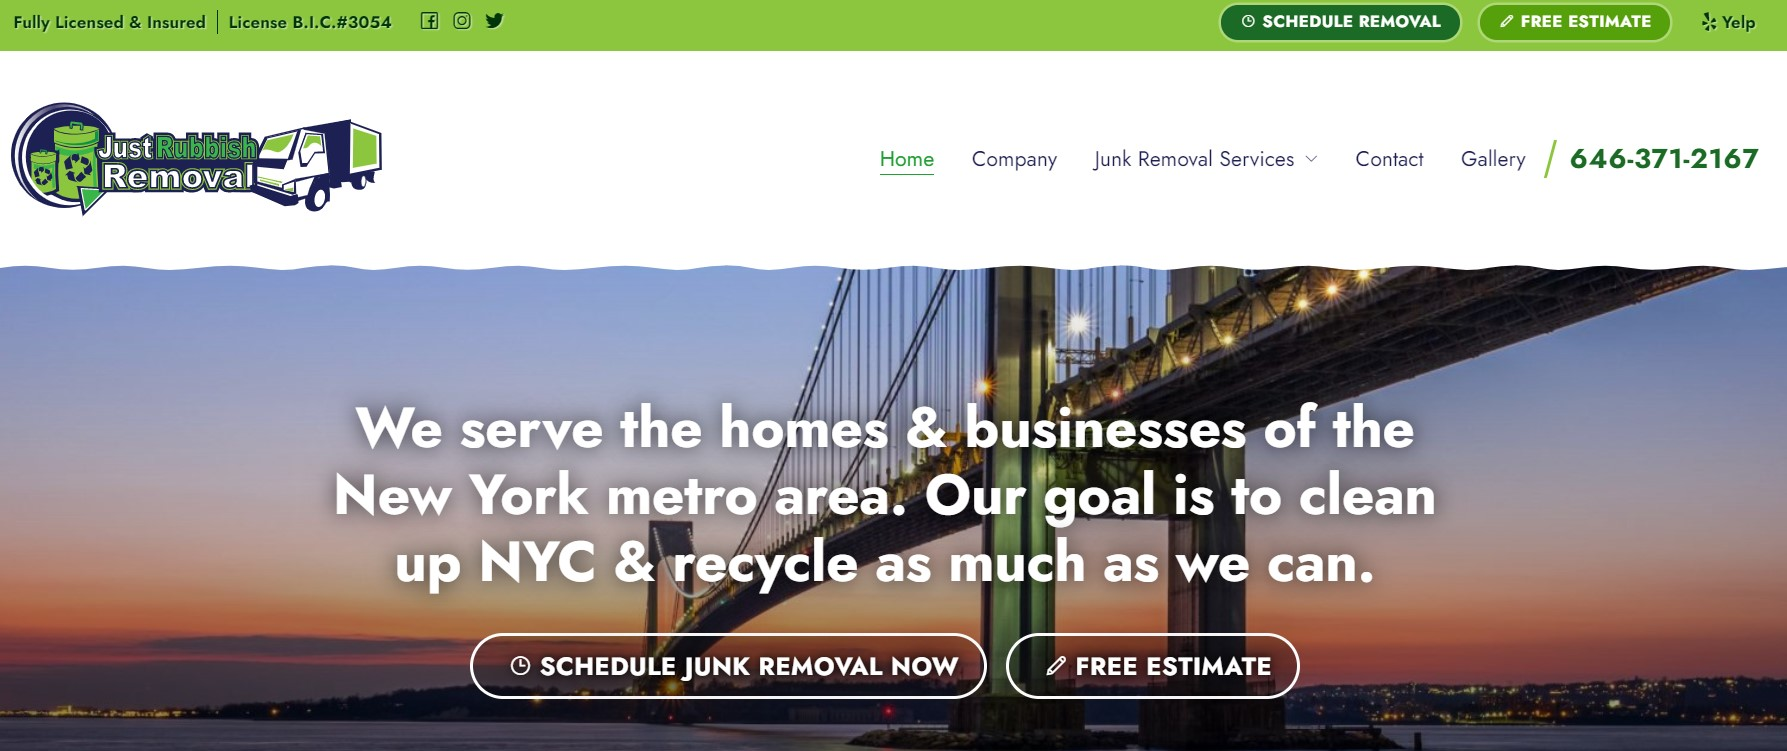 just rubbish removal in new york